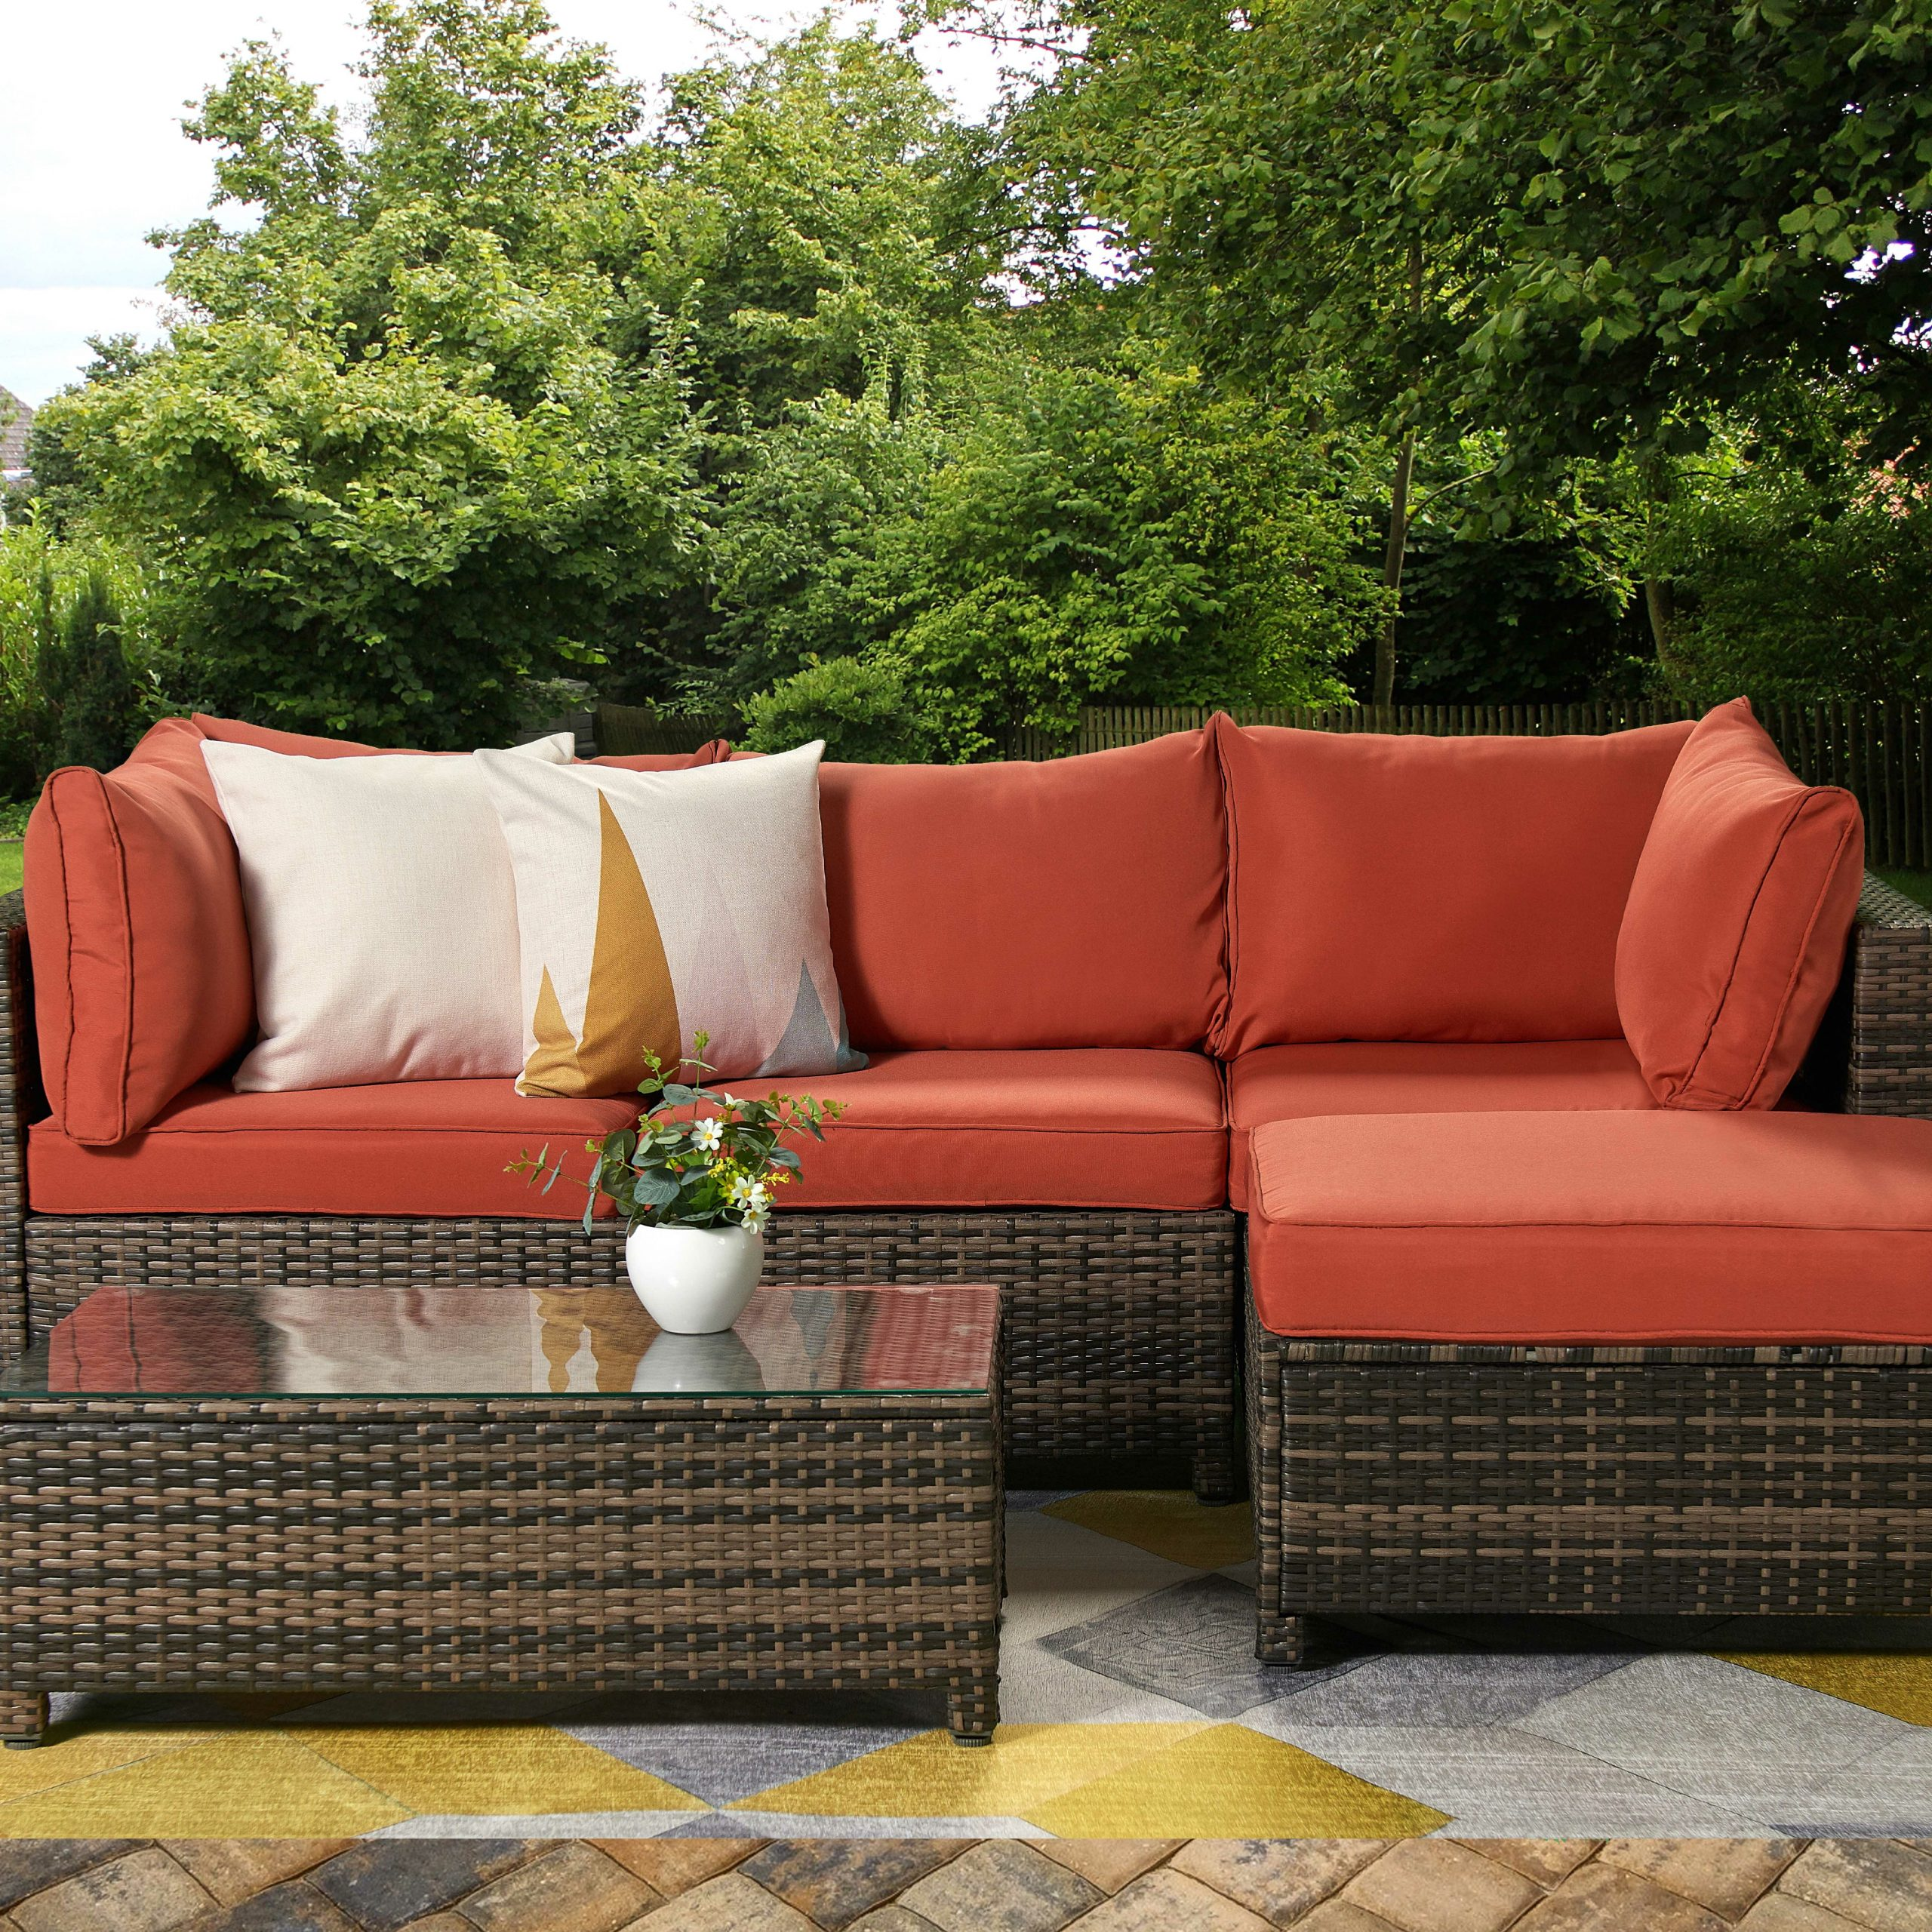 Letona Patio Sectionals With Cushions With Regard To Trendy Ivy Bronx Roni Patio Sectional With Cushions & Reviews (View 6 of 25)